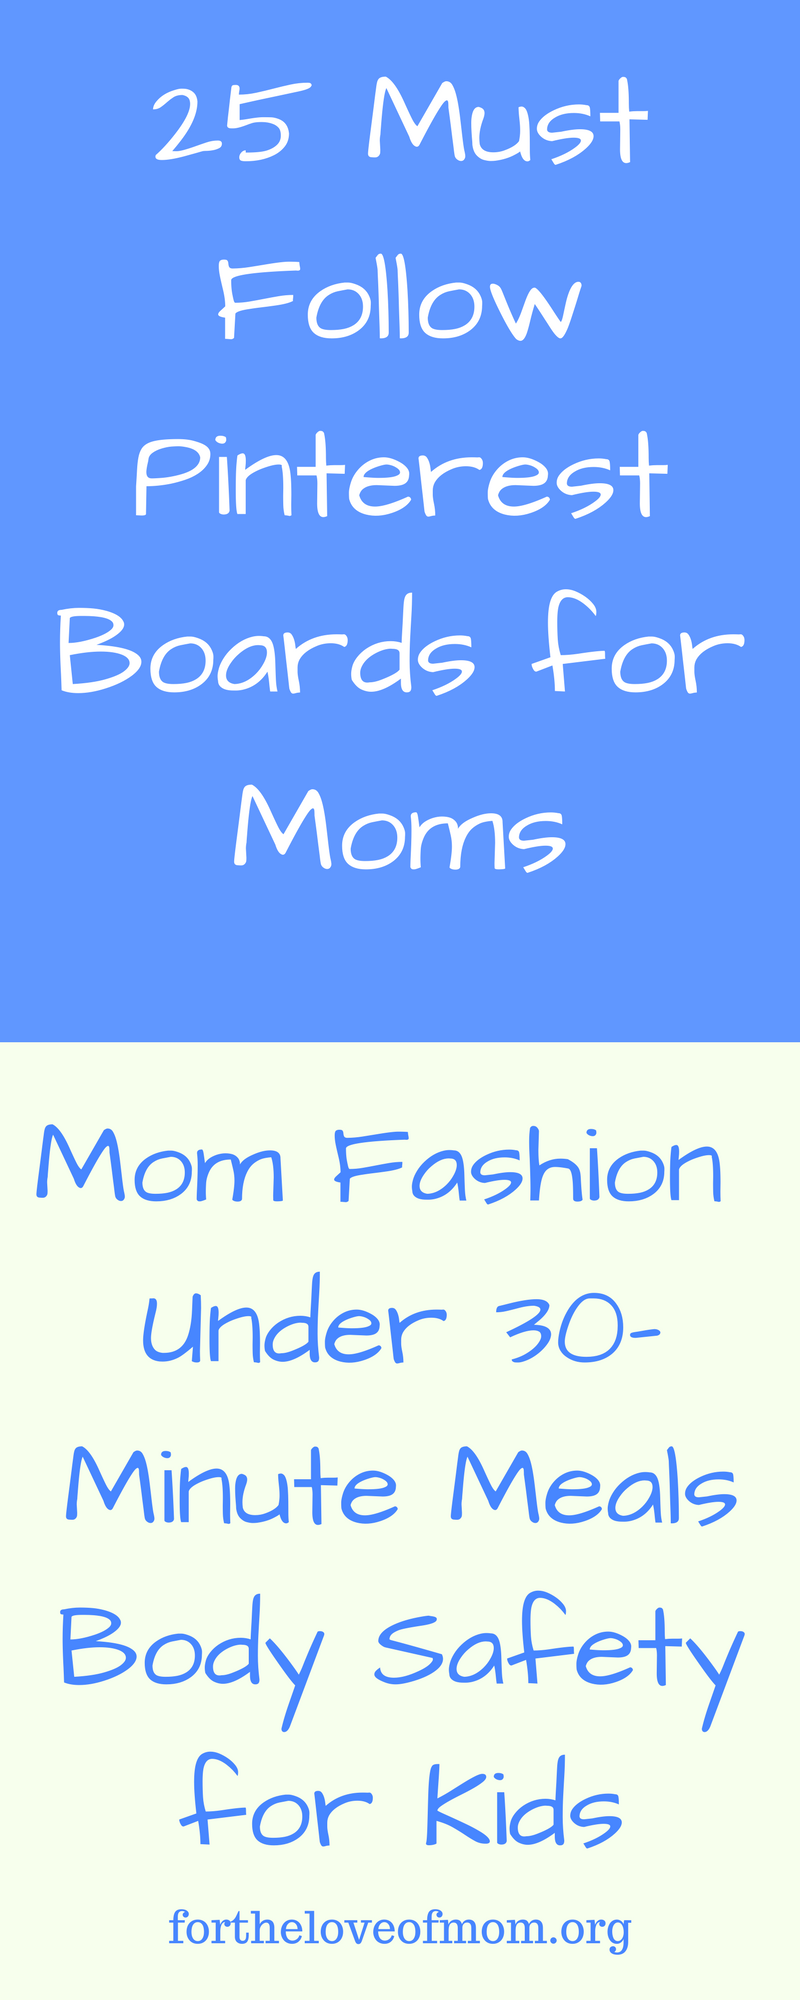 25 Must Follow Pinterest Boards for Moms